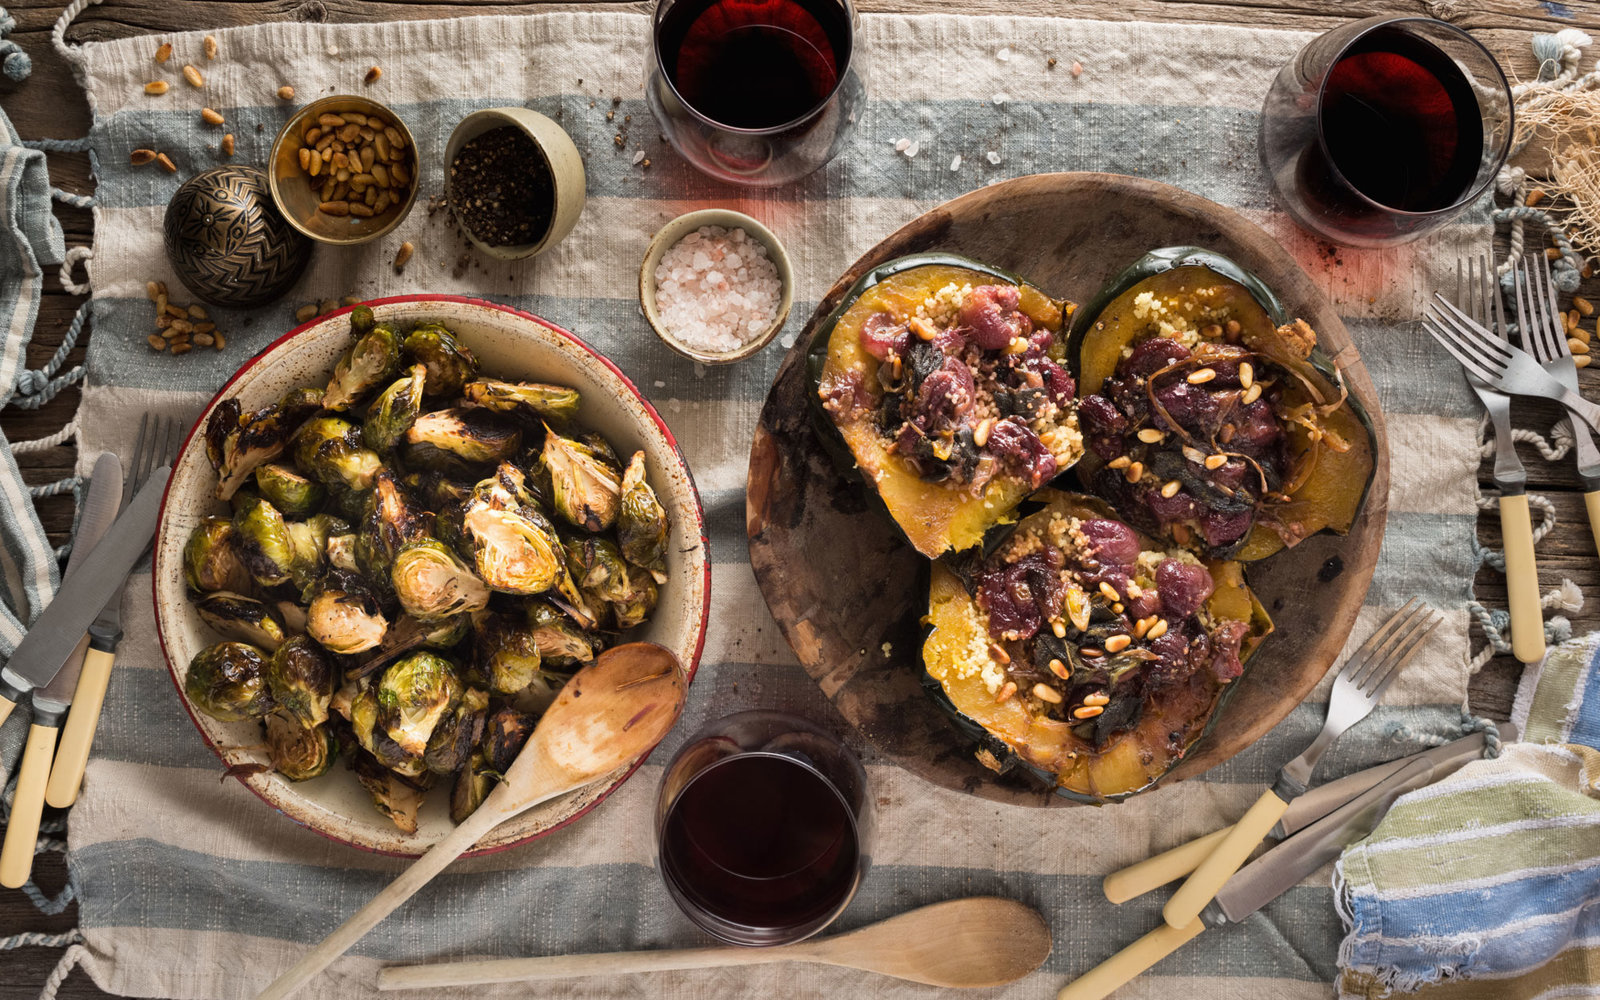 Grilled Brussels Sprouts and Stuffed Squash